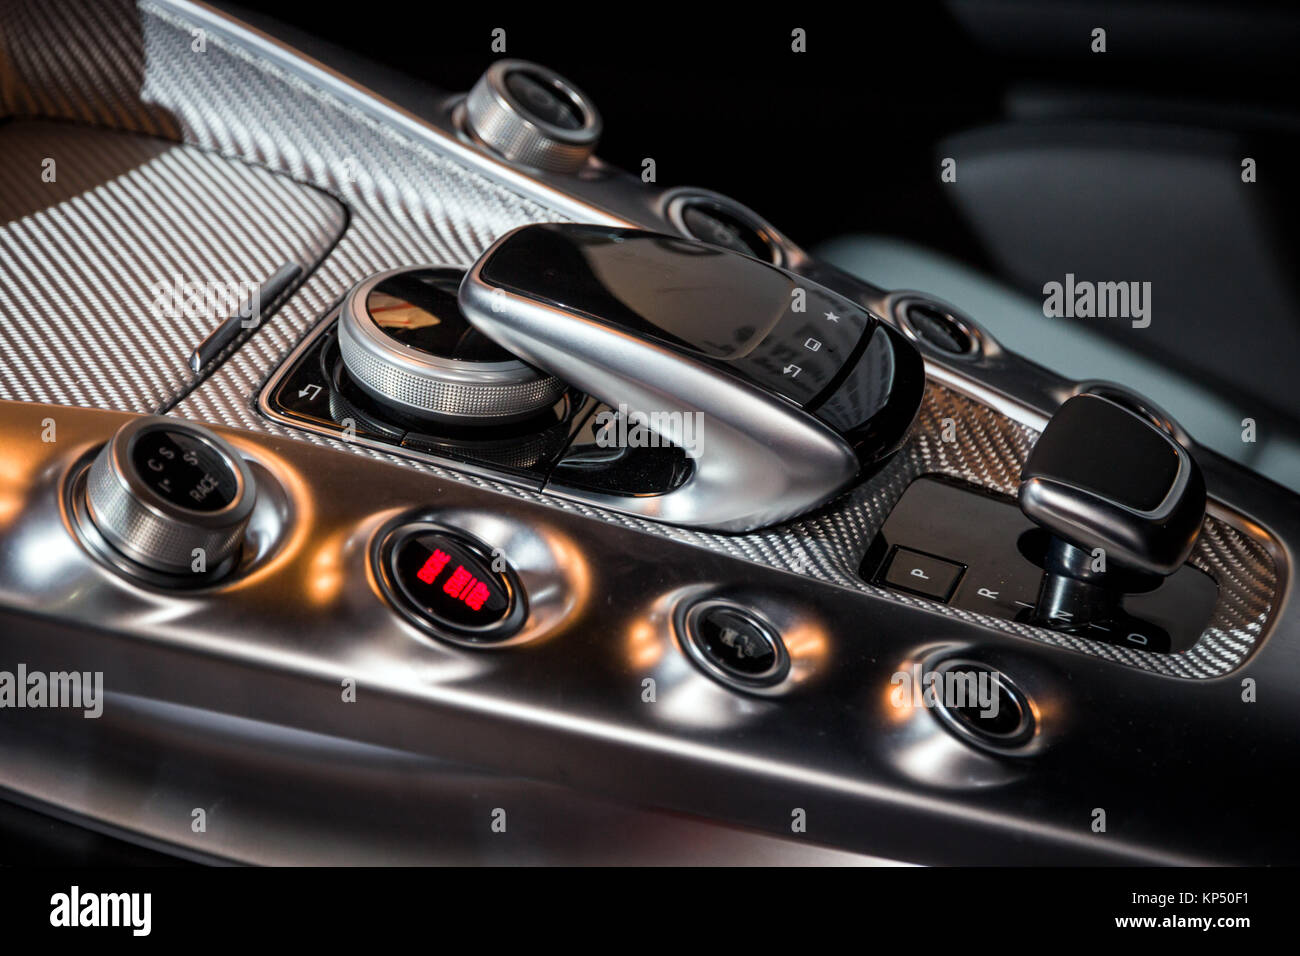 Middle Console Stockfotos & Middle Console Bilder - Alamy